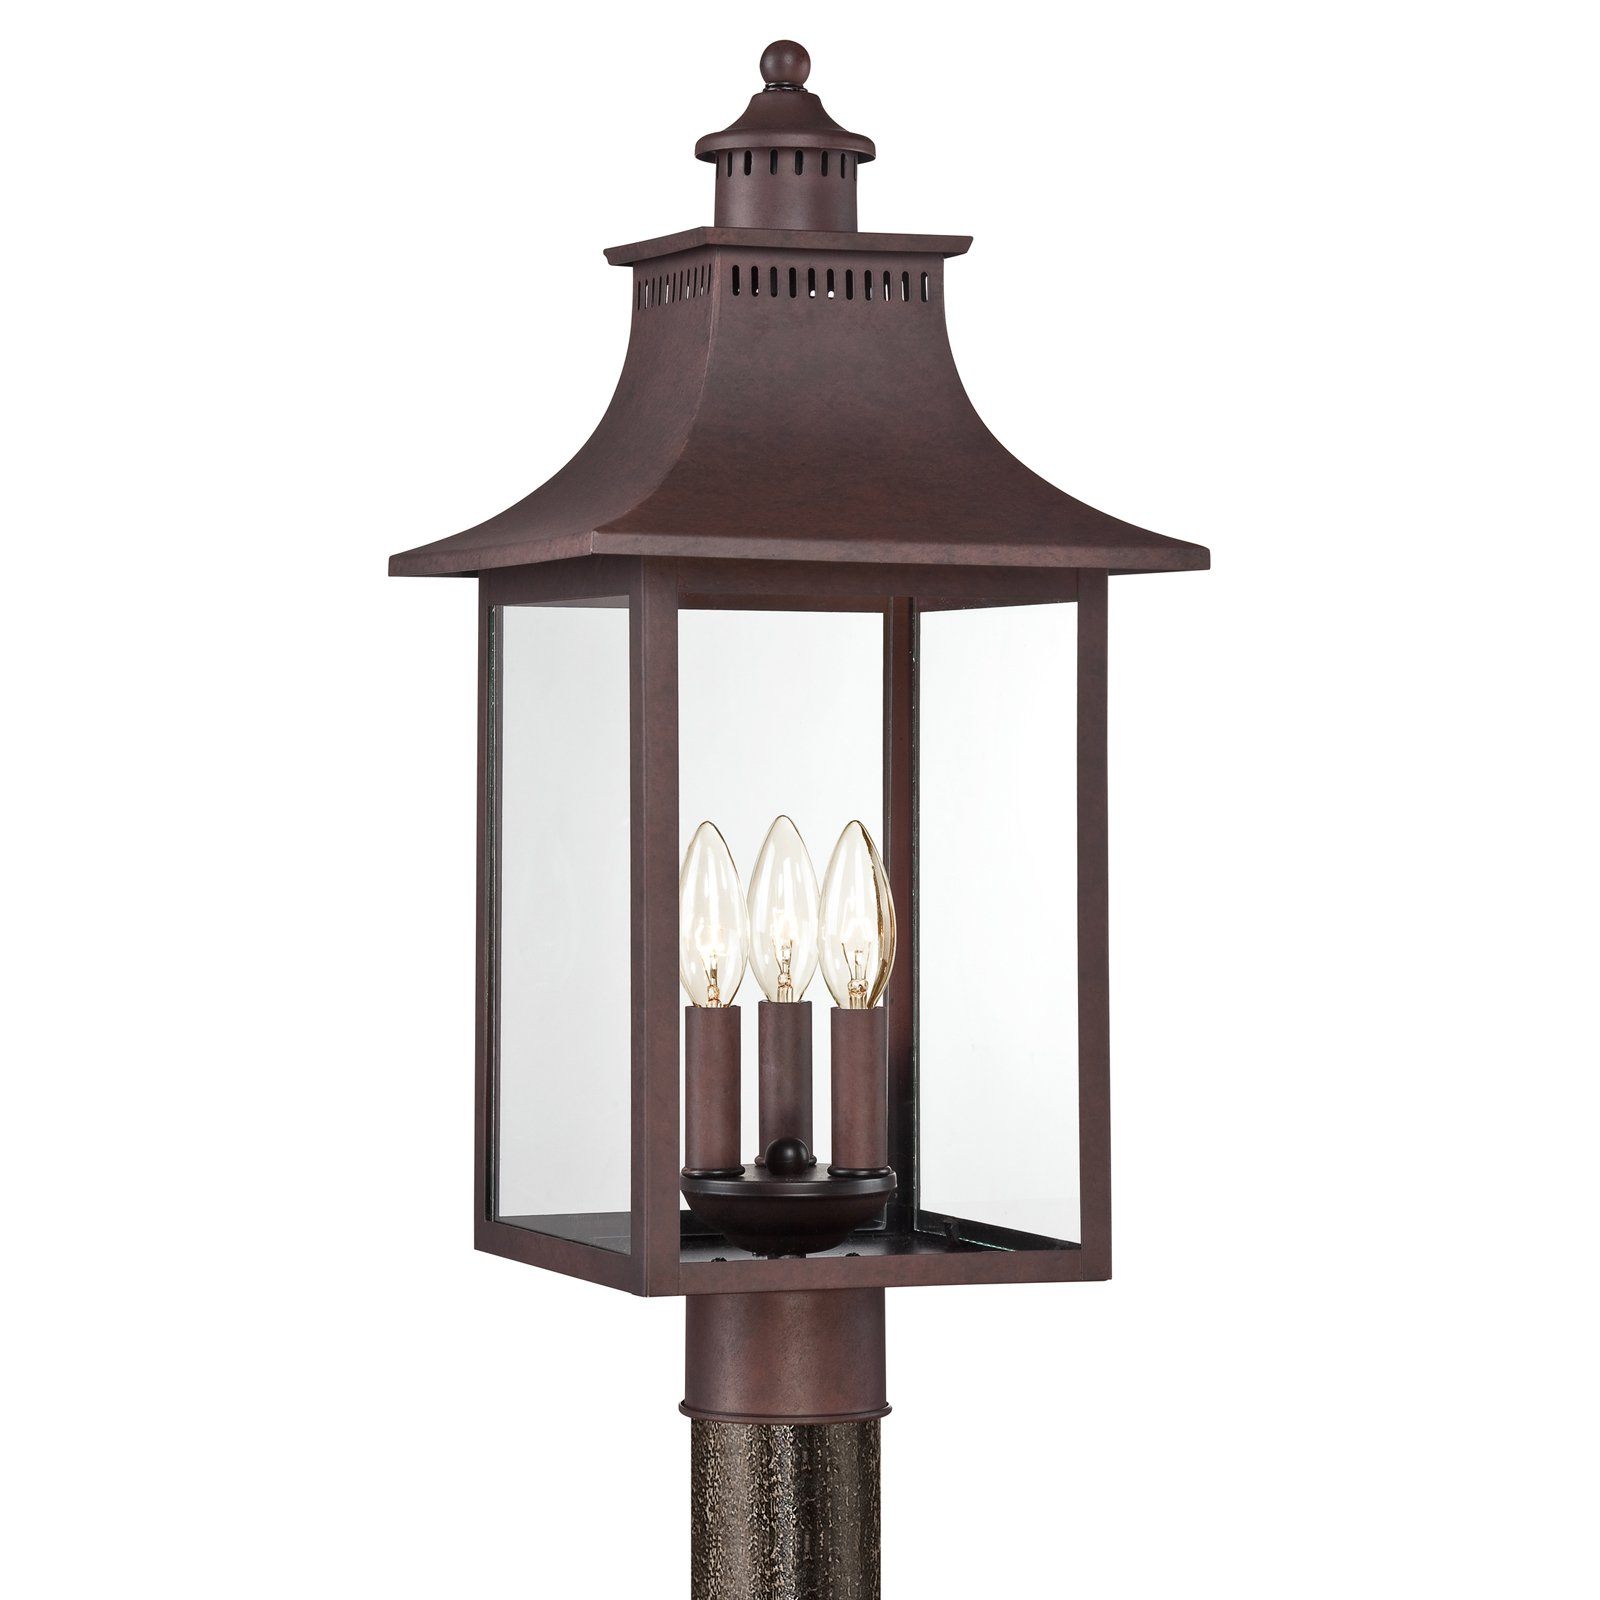 Quoizel Chancellor CCR9010CU Outdoor Post Lantern